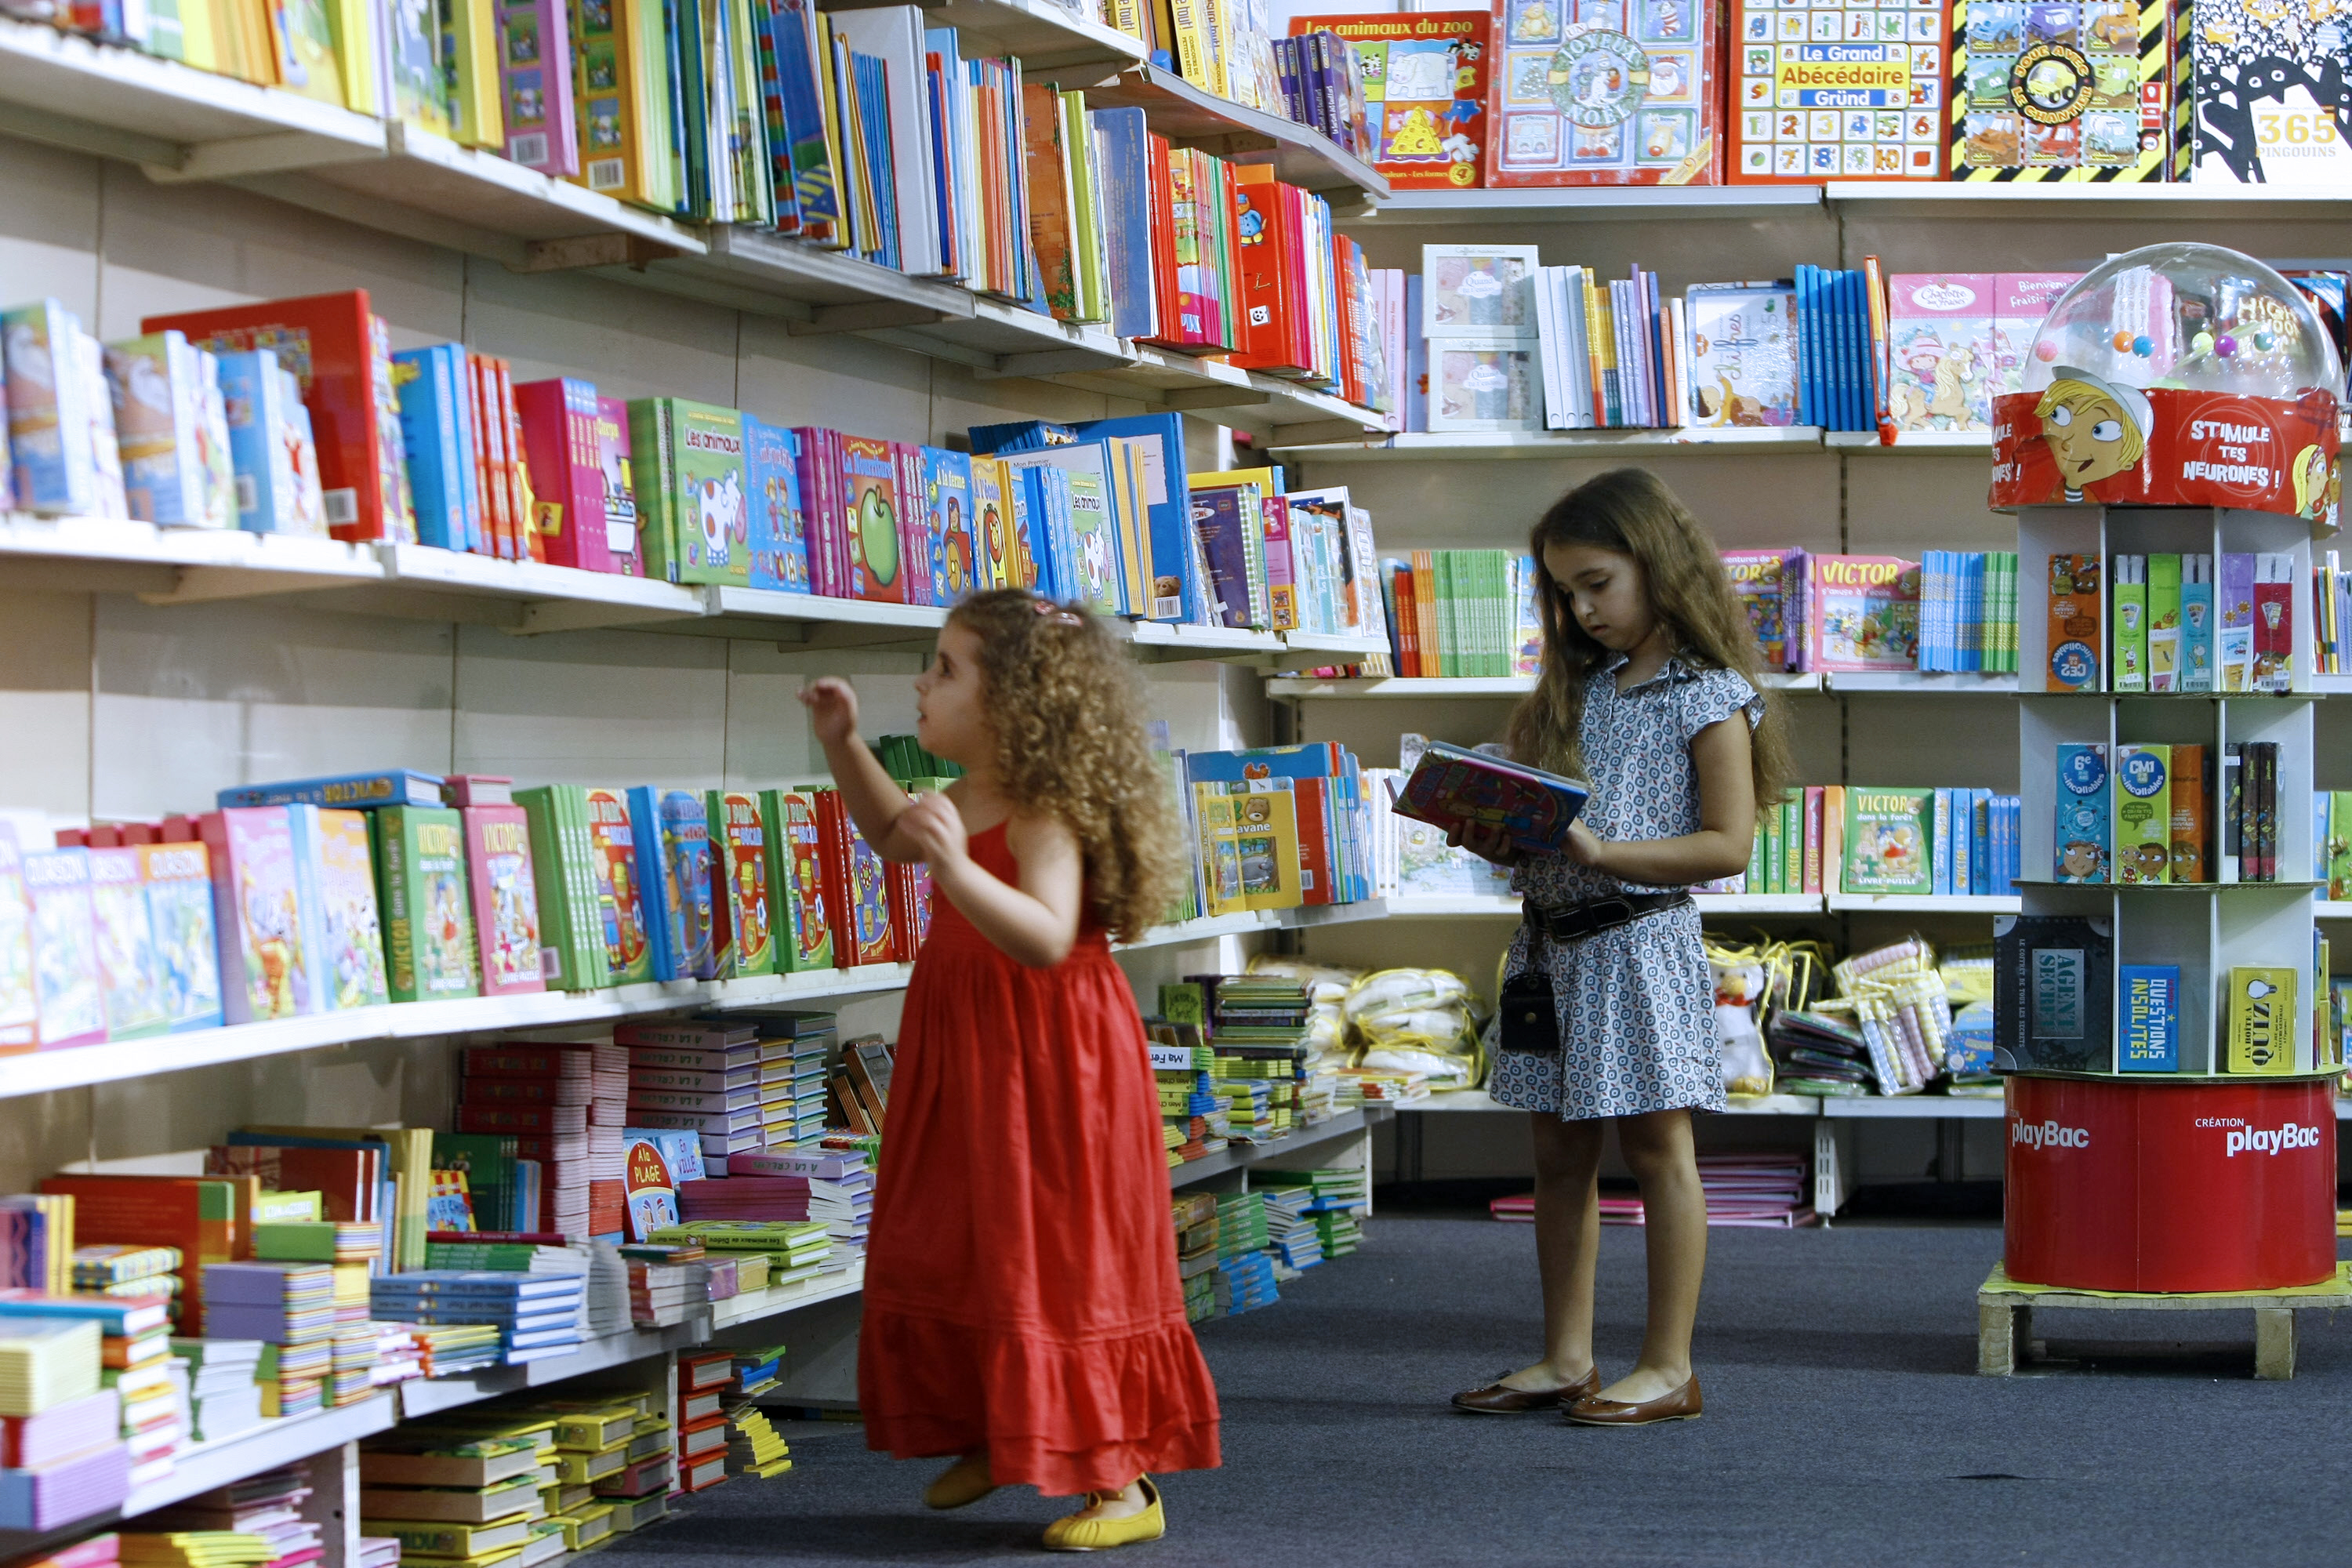 6 Reasons Children S Books Are More Important Than Ever Because There So Much In Those Pages That Can Broaden Horizons